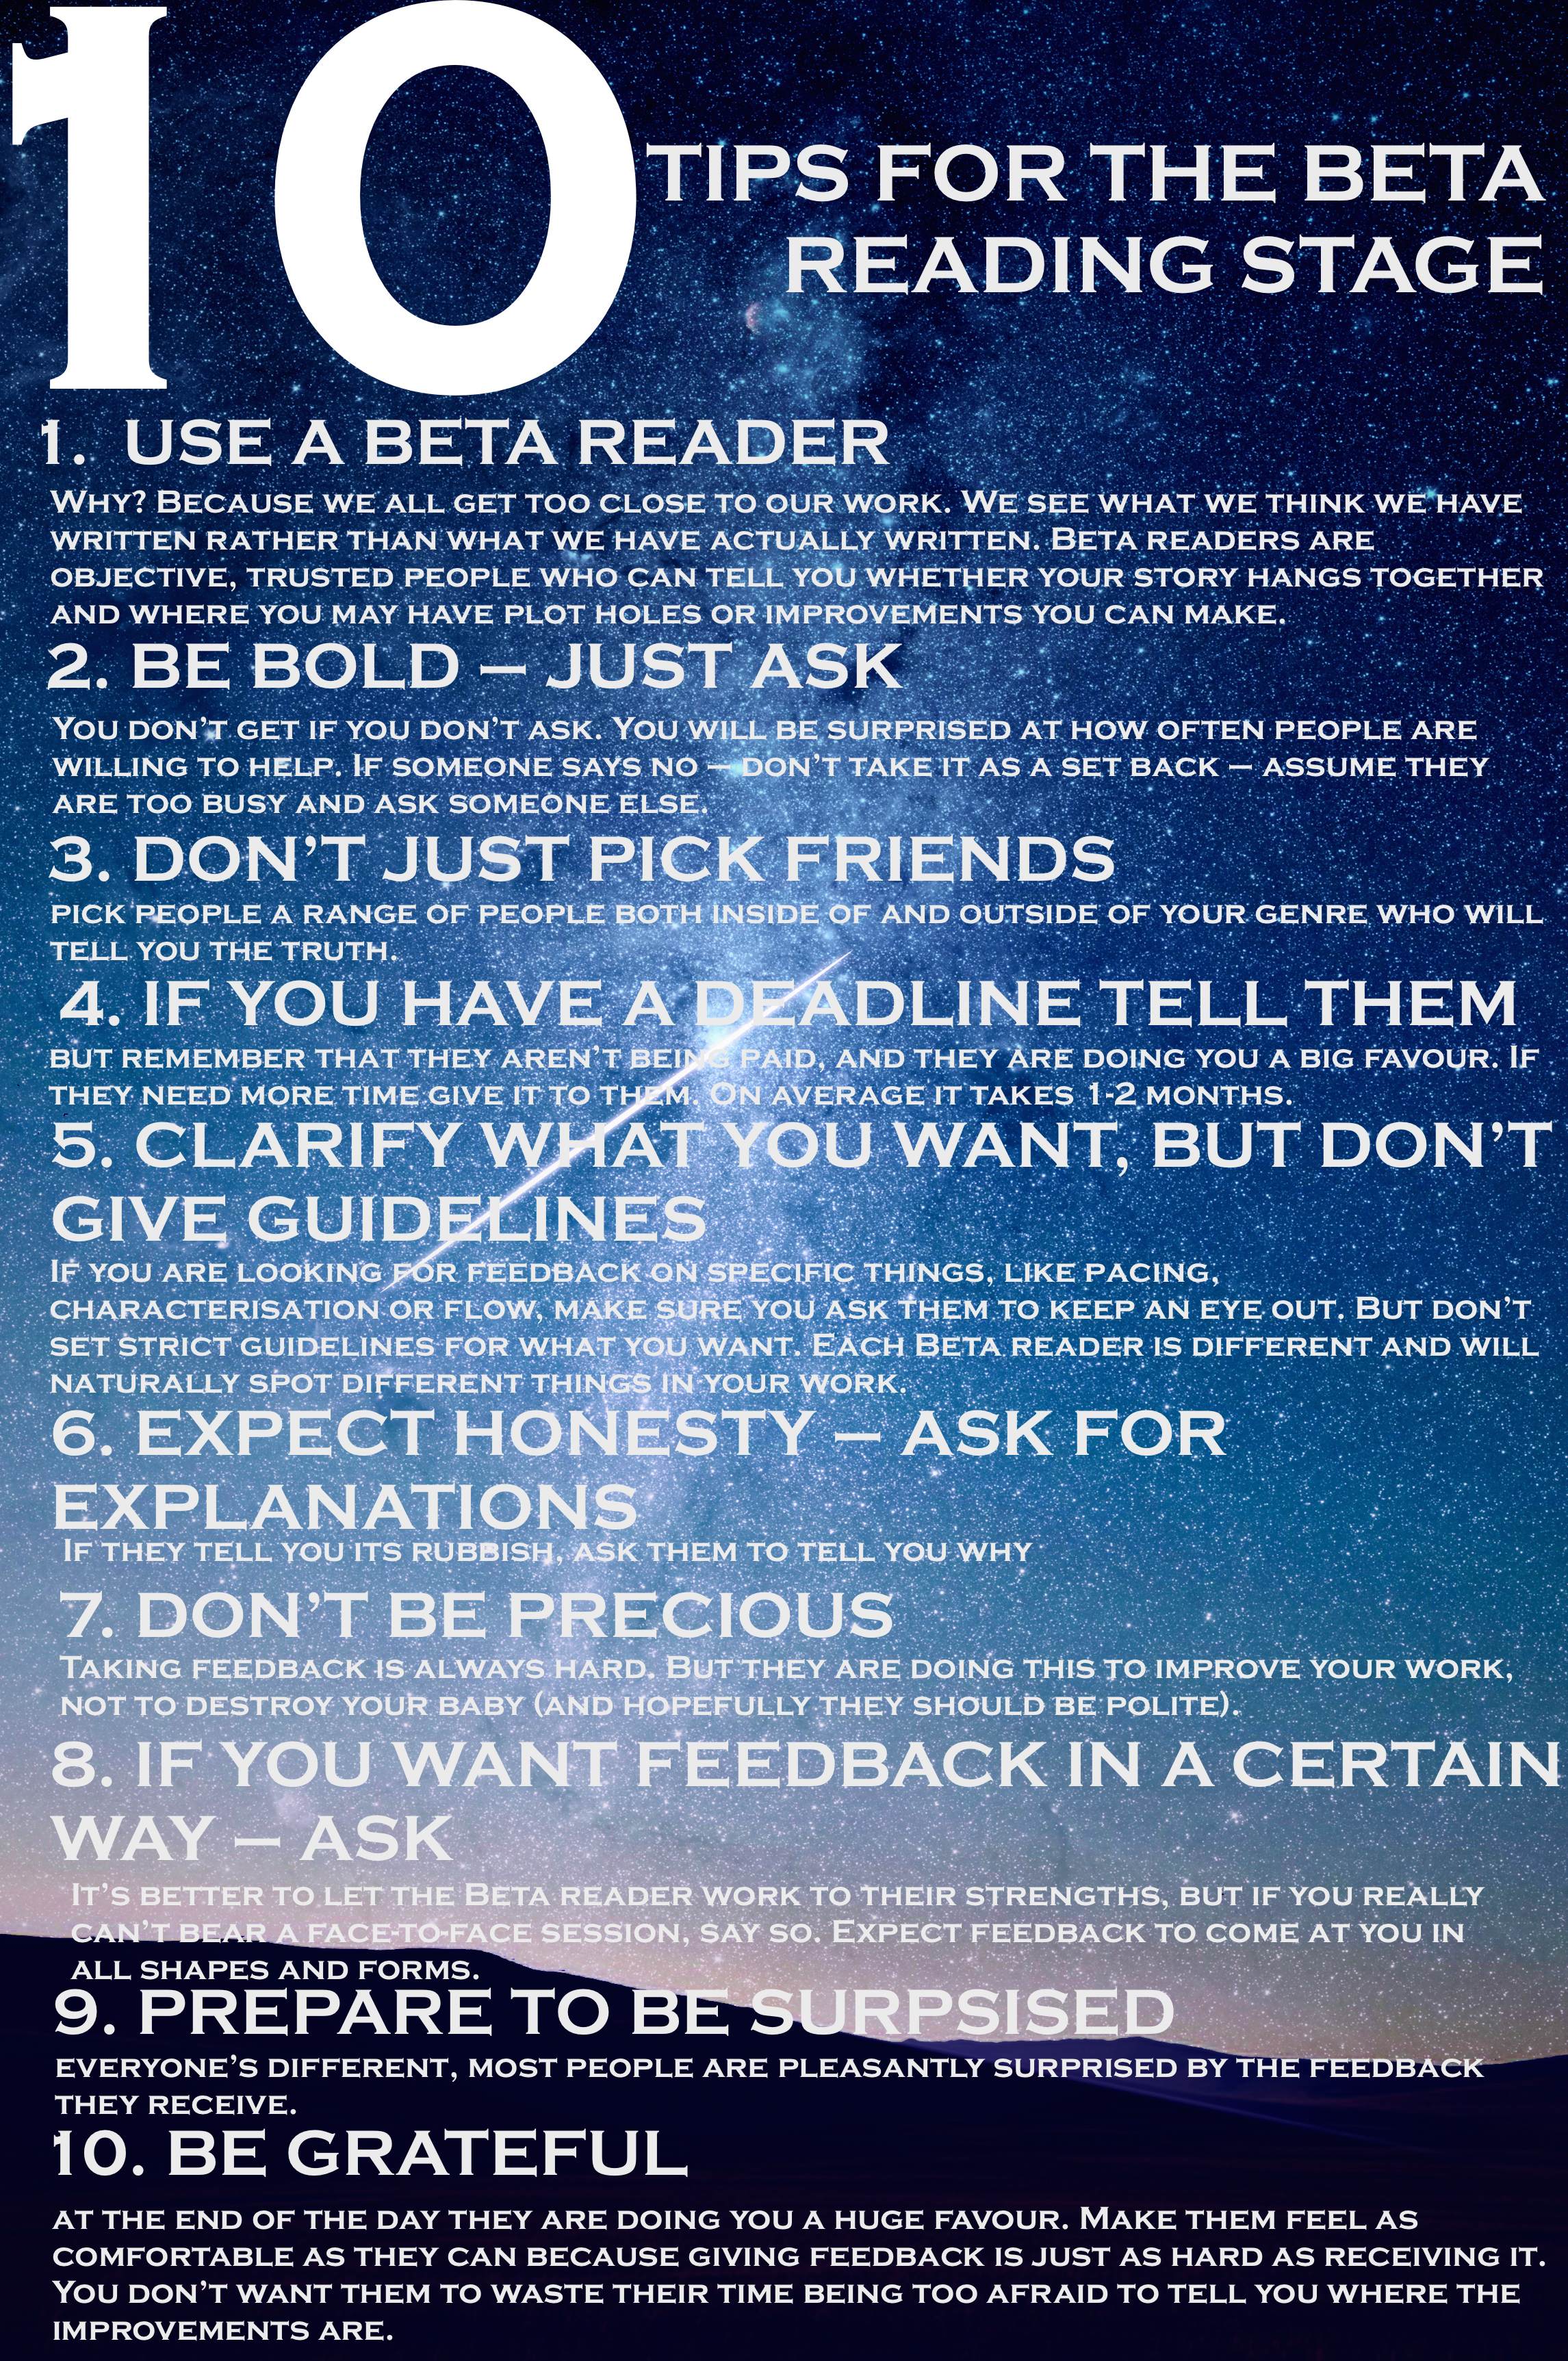 10 TOP TIPS For the BETA Reading Stage - SACHA BLACK